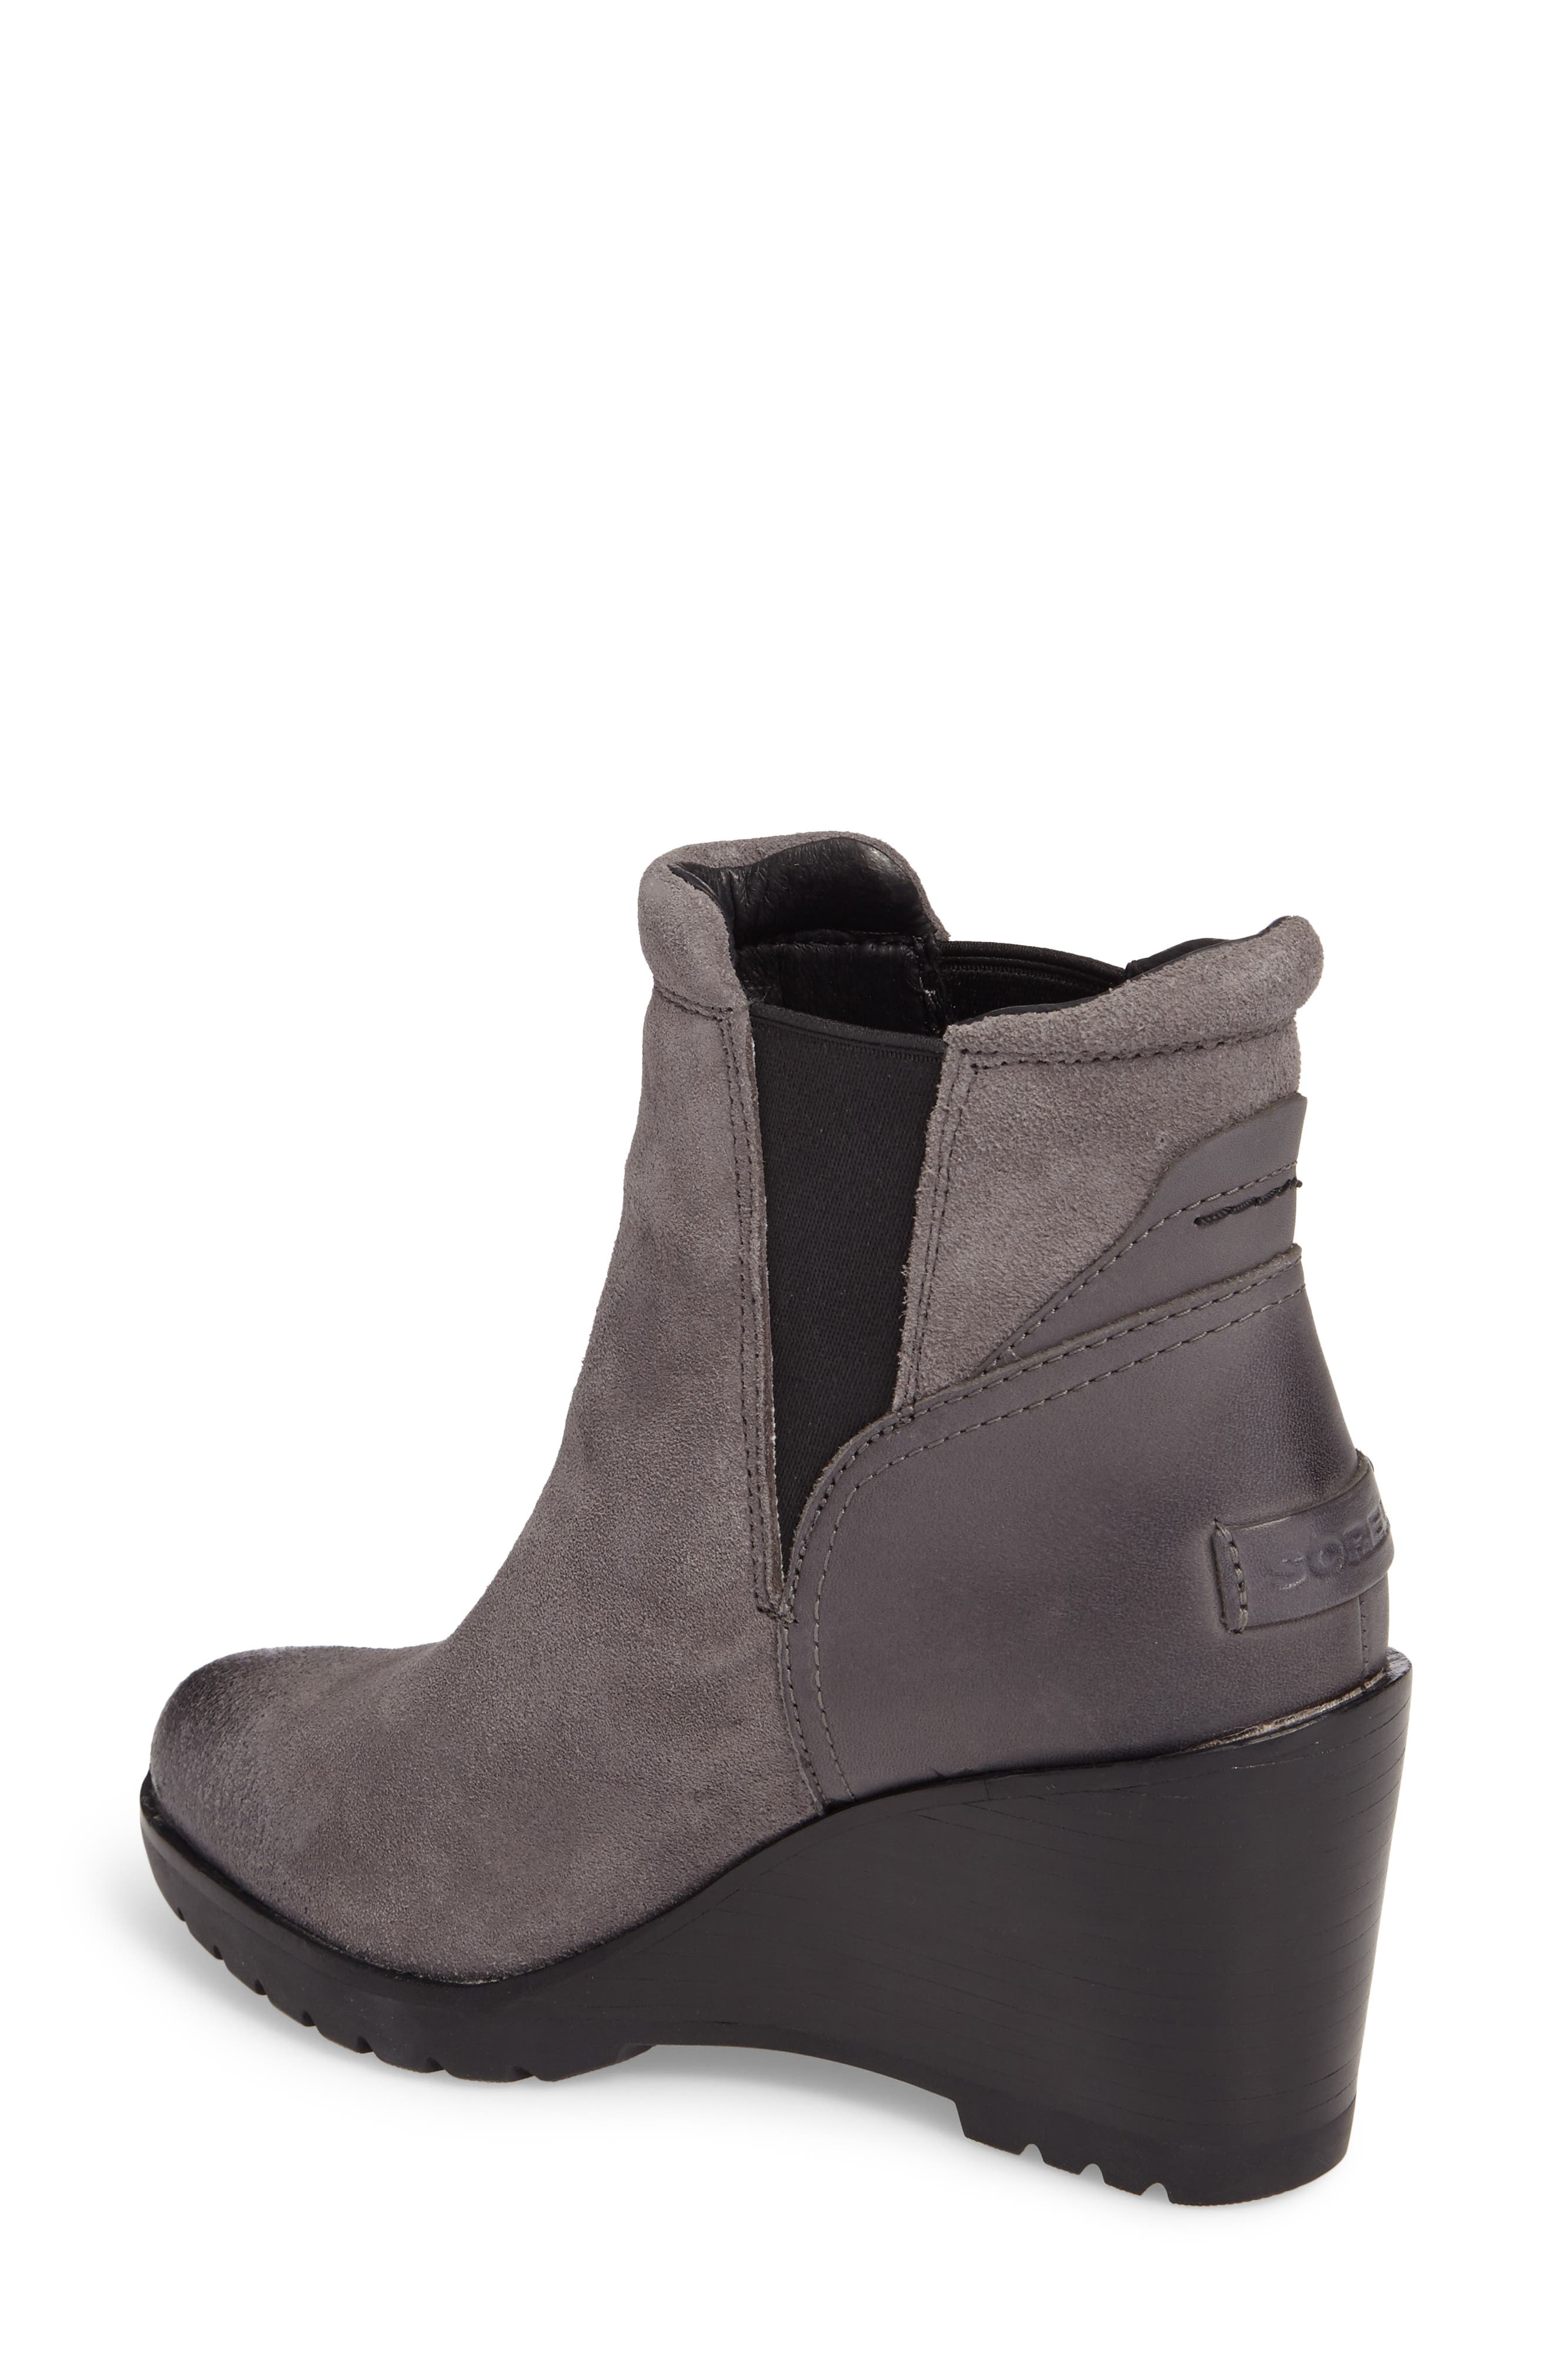 After Hours Chelsea Boot,                             Alternate thumbnail 2, color,                             Quarry